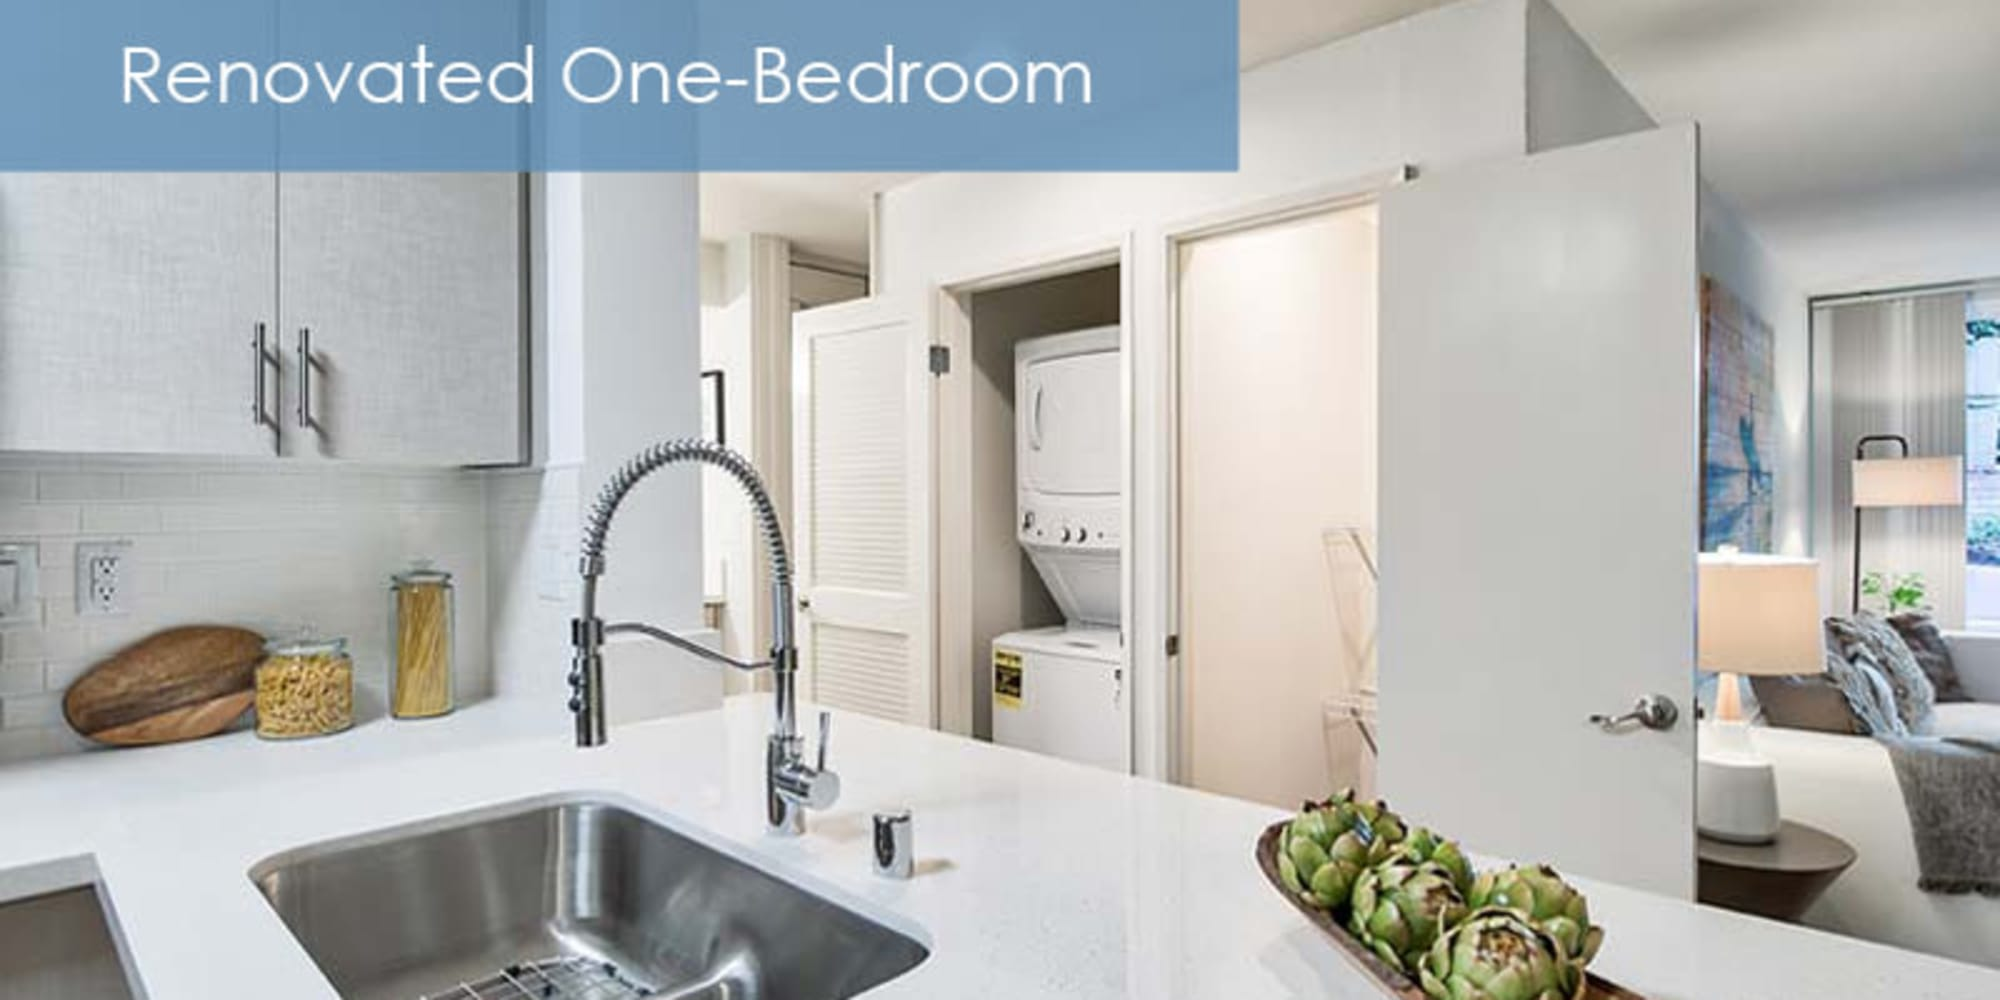 renovated kitchen with a stainless steel sink at The Meadows in Culver City, California